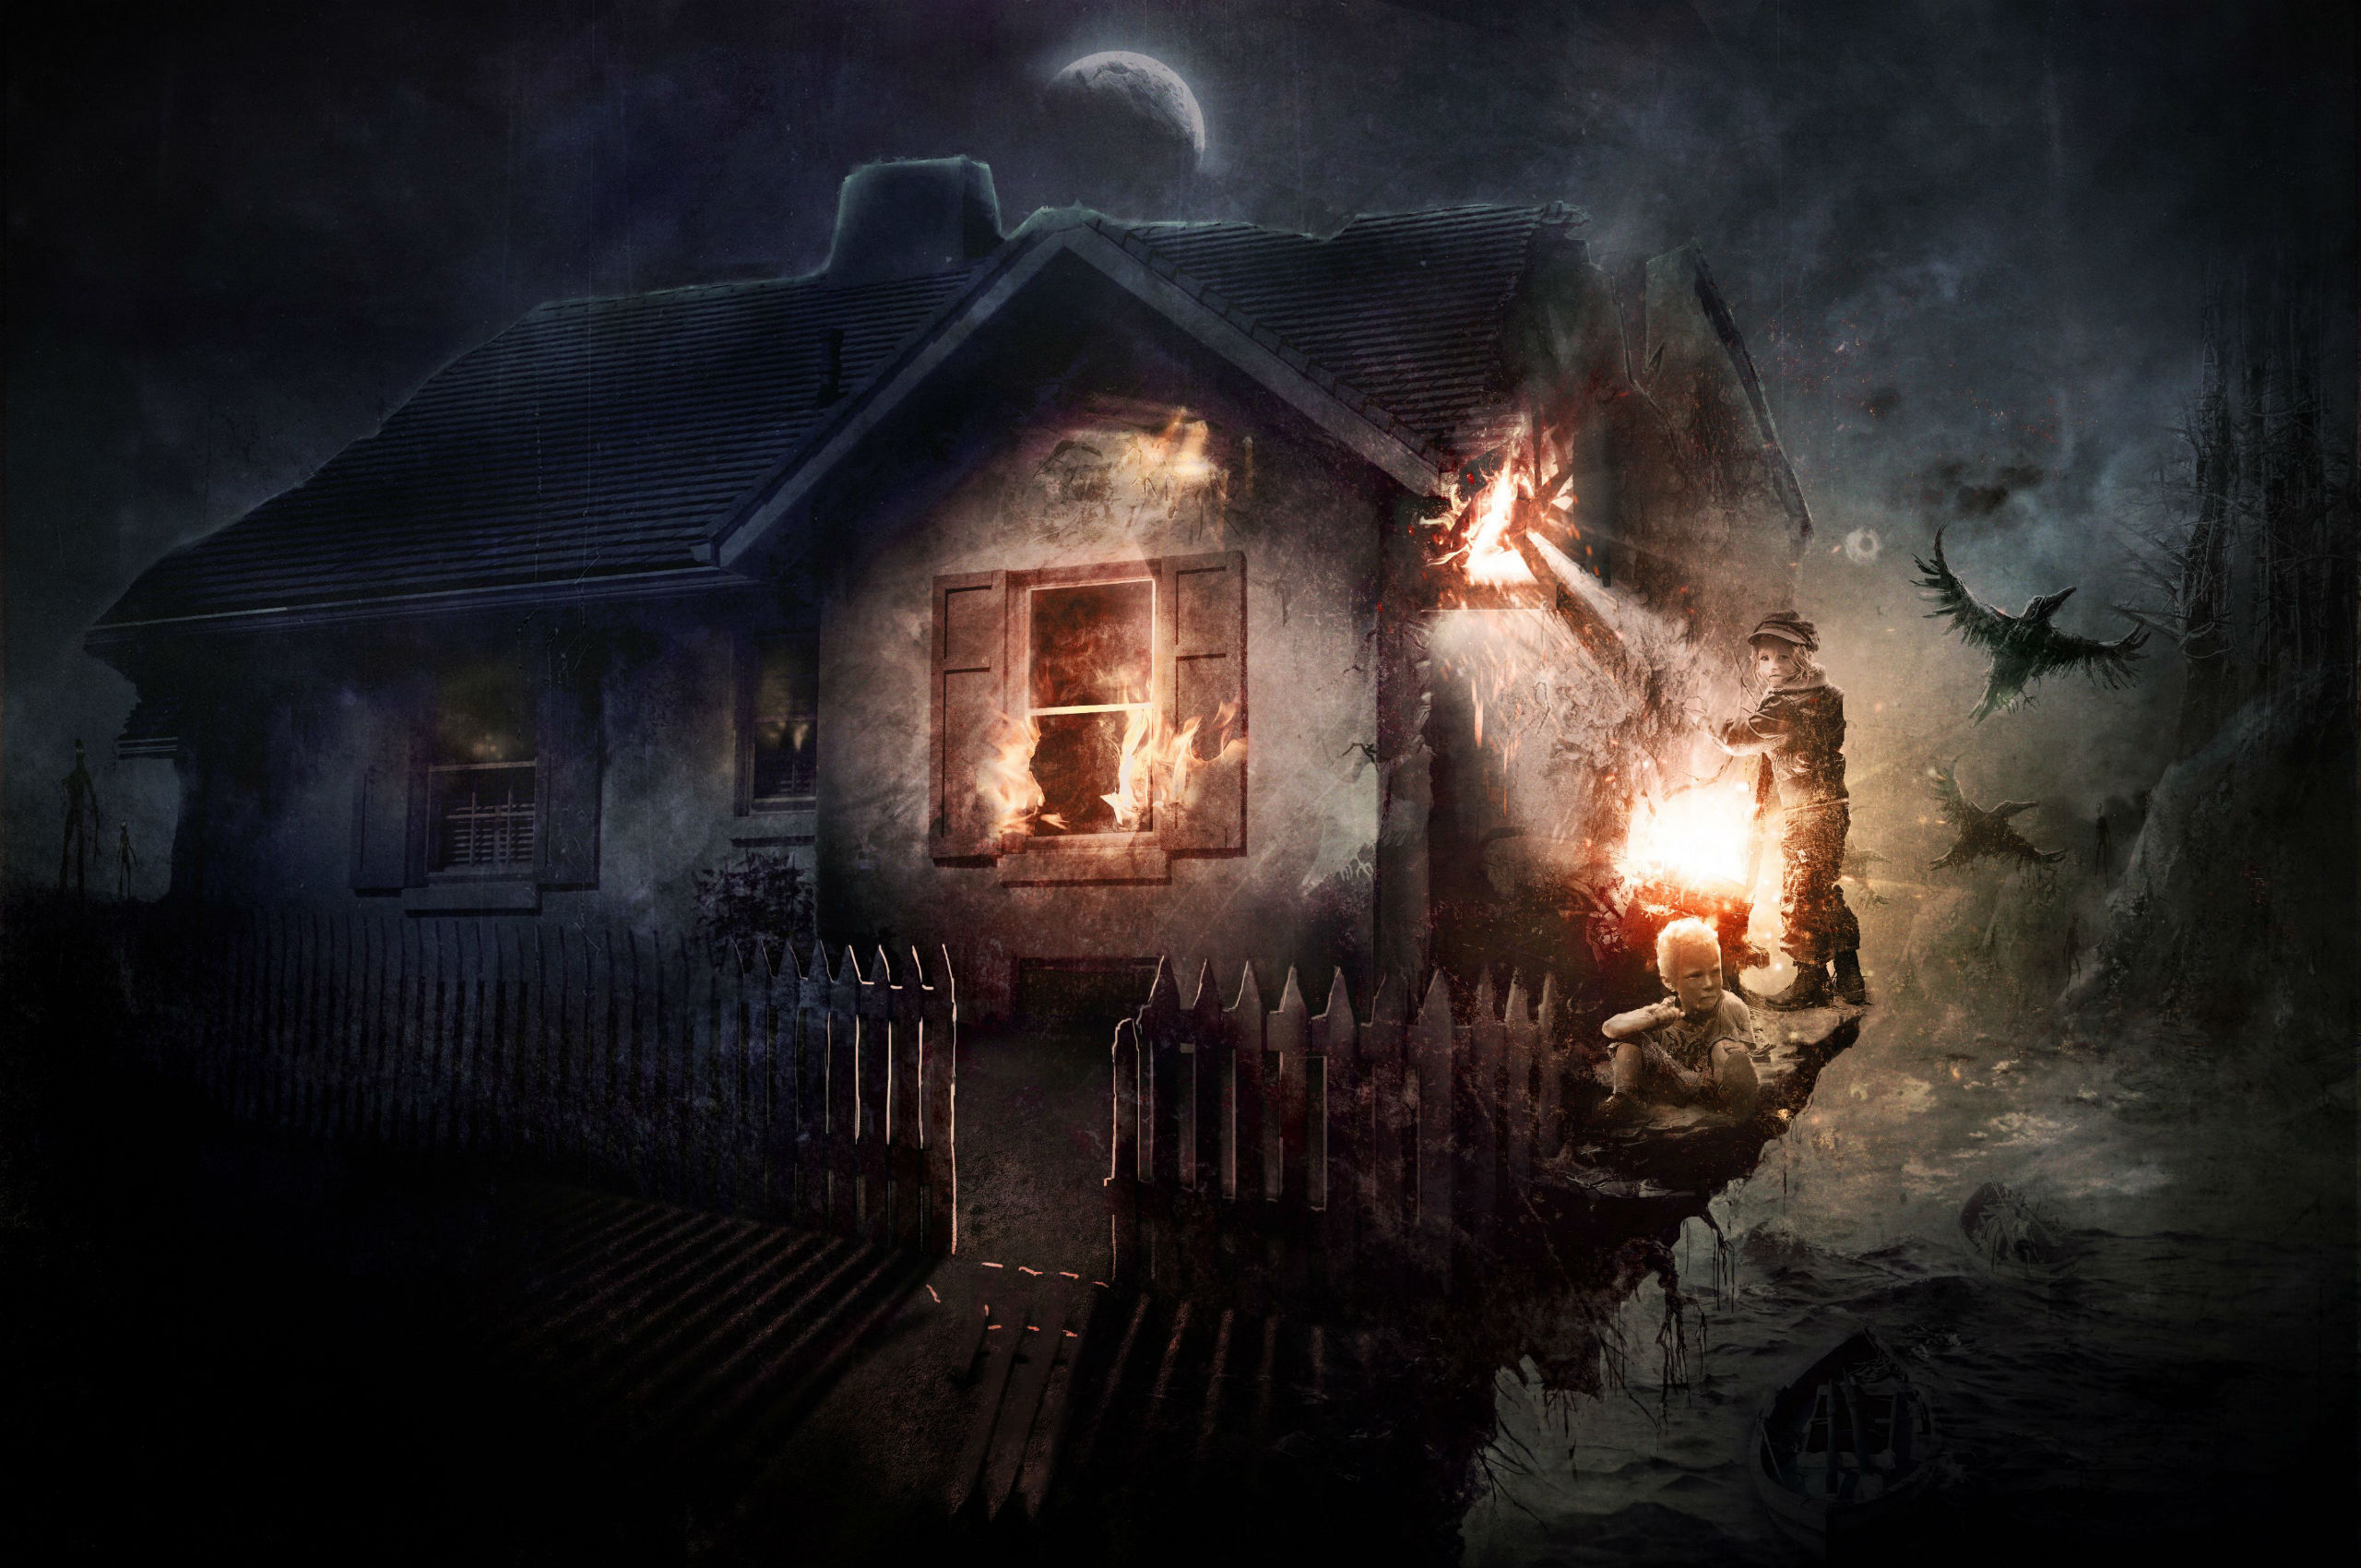 Gothic Houses Fire Fence Fantasy Dark Wallpaper 2560x1700 78439